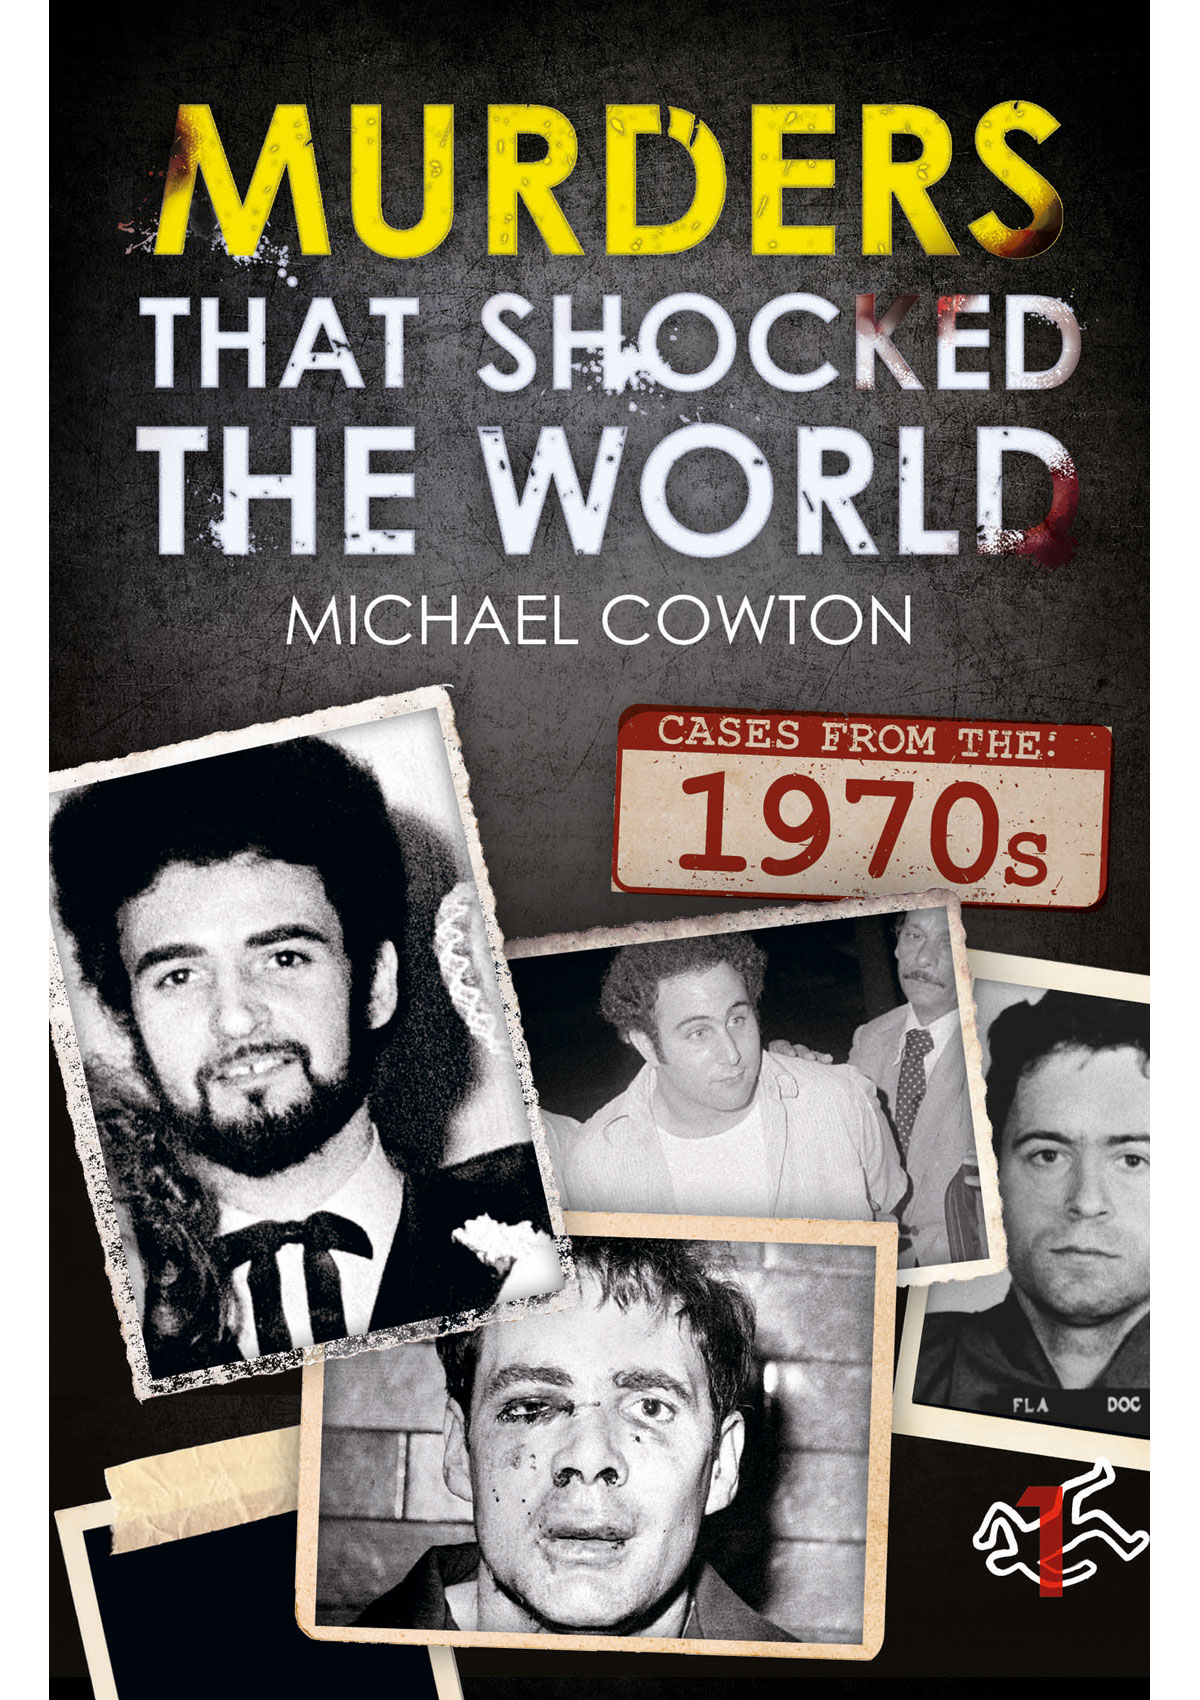 Murders That Shocked the World - 70's